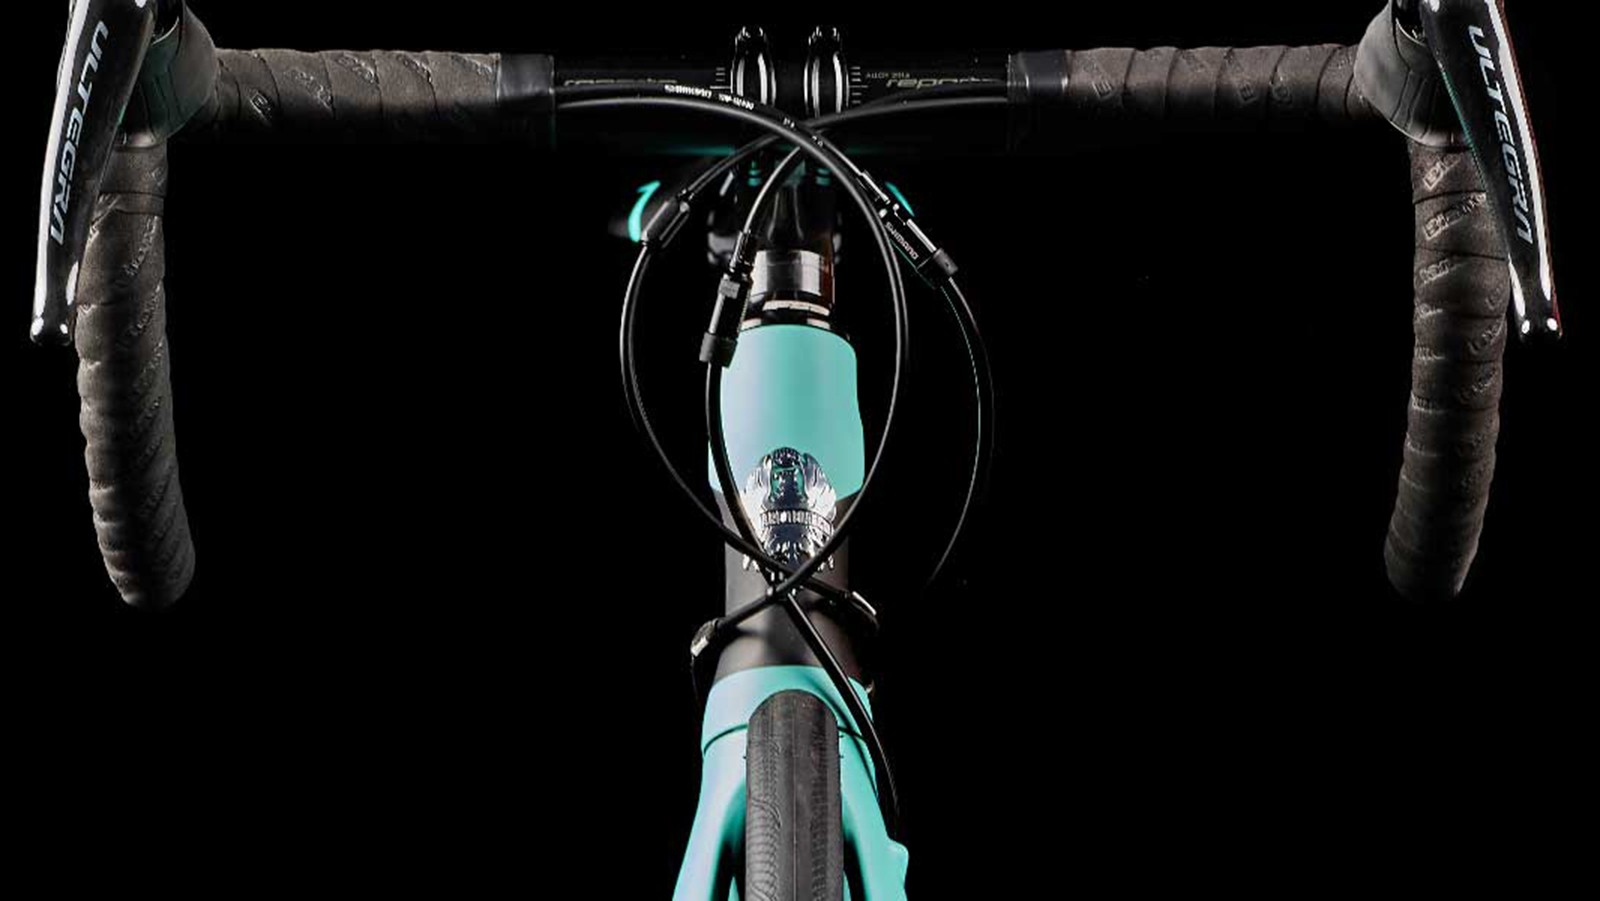 The new Bianchi Oltre XR3 Disc